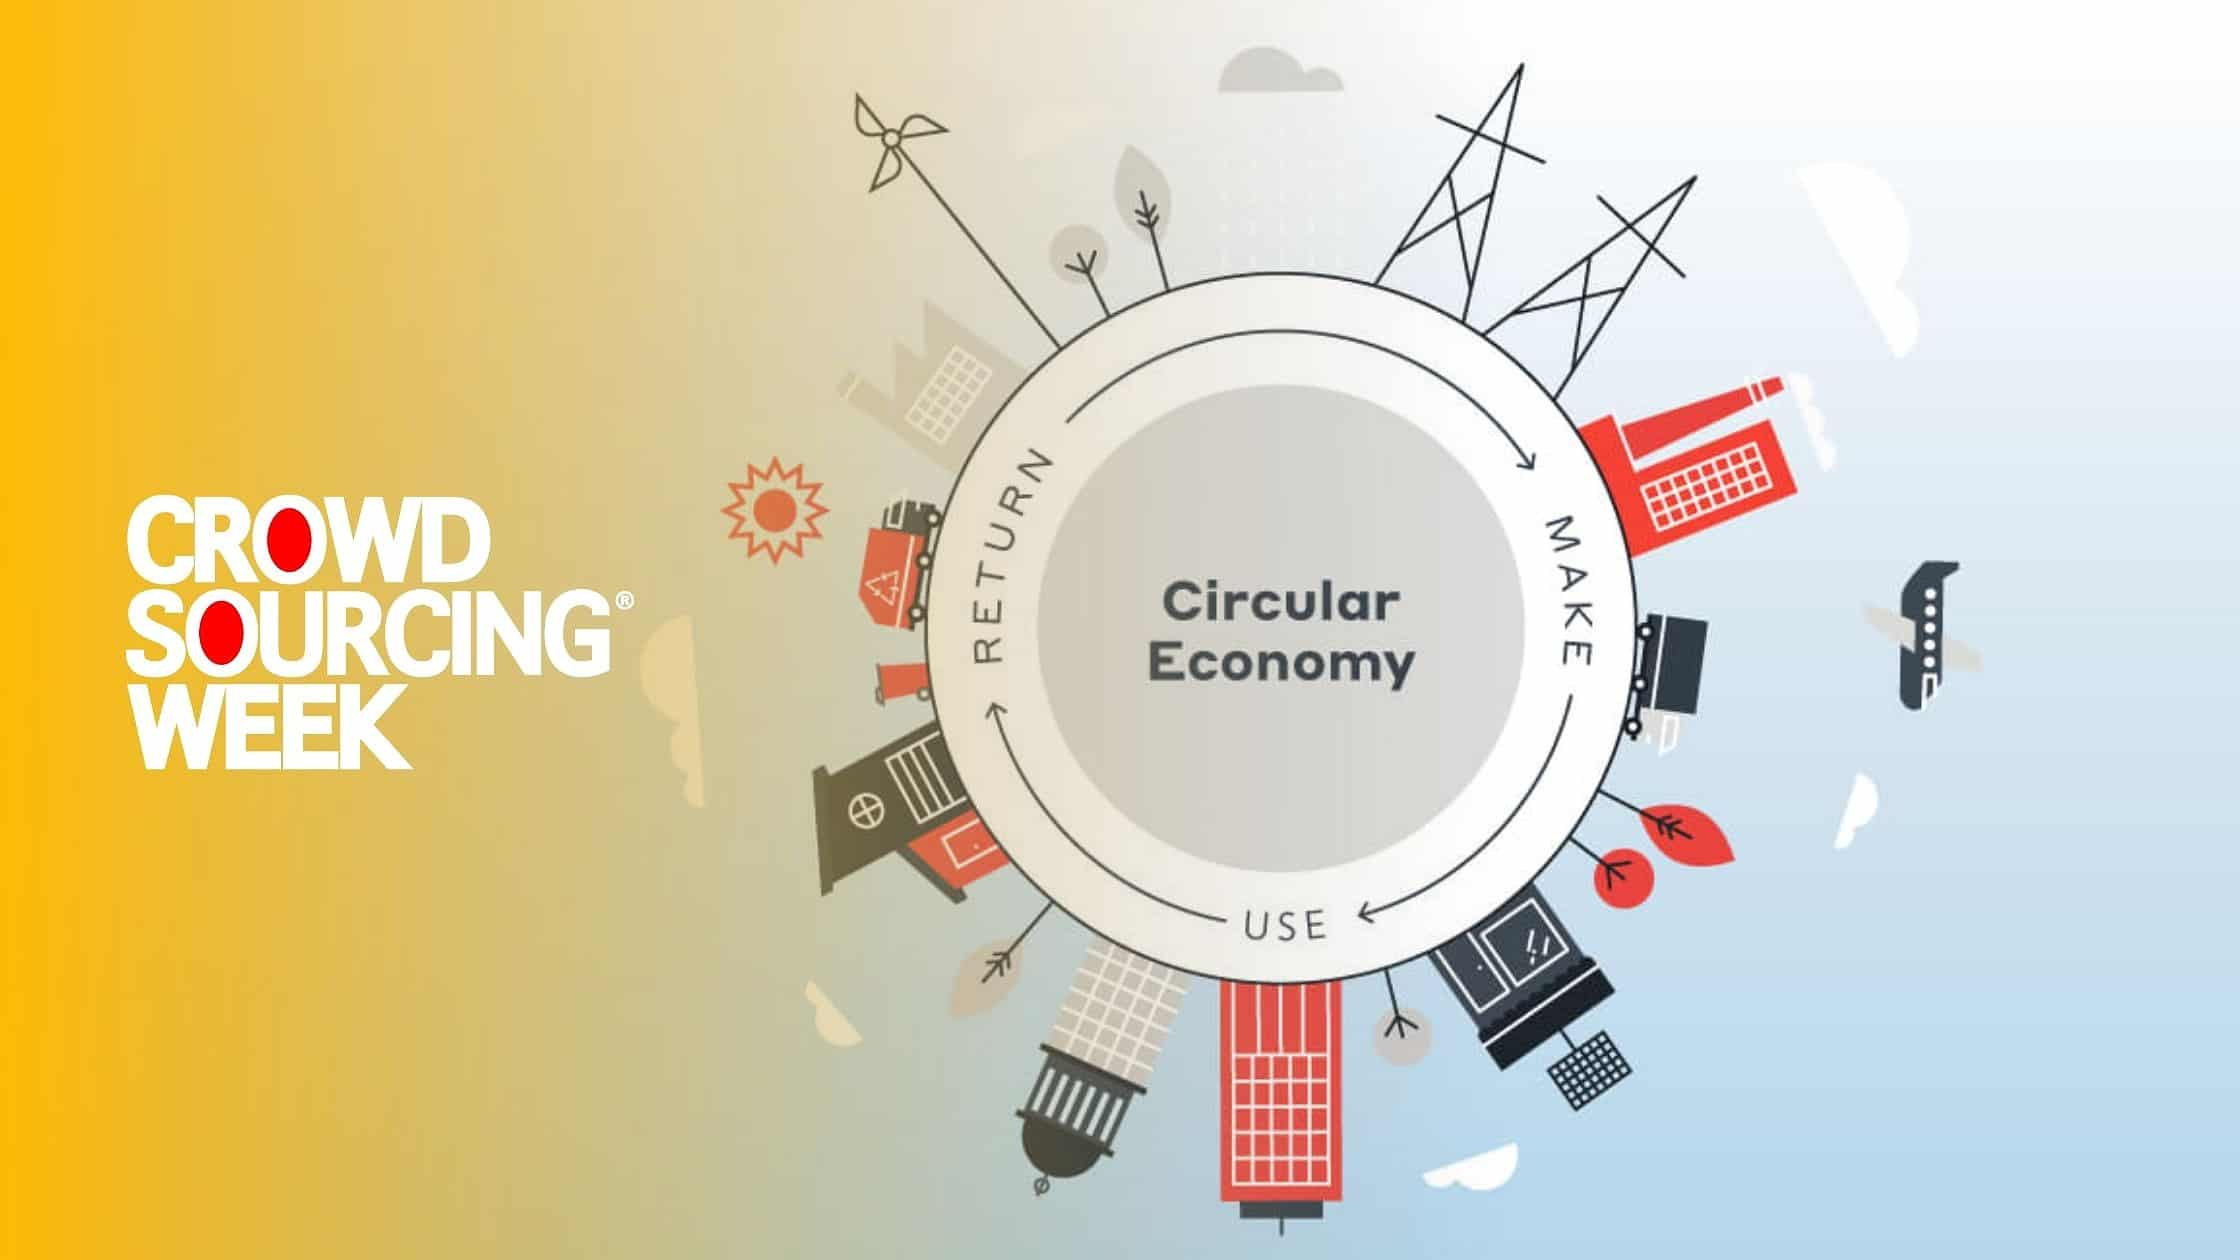 BOLD Crowdsourcing in the Circular Economy